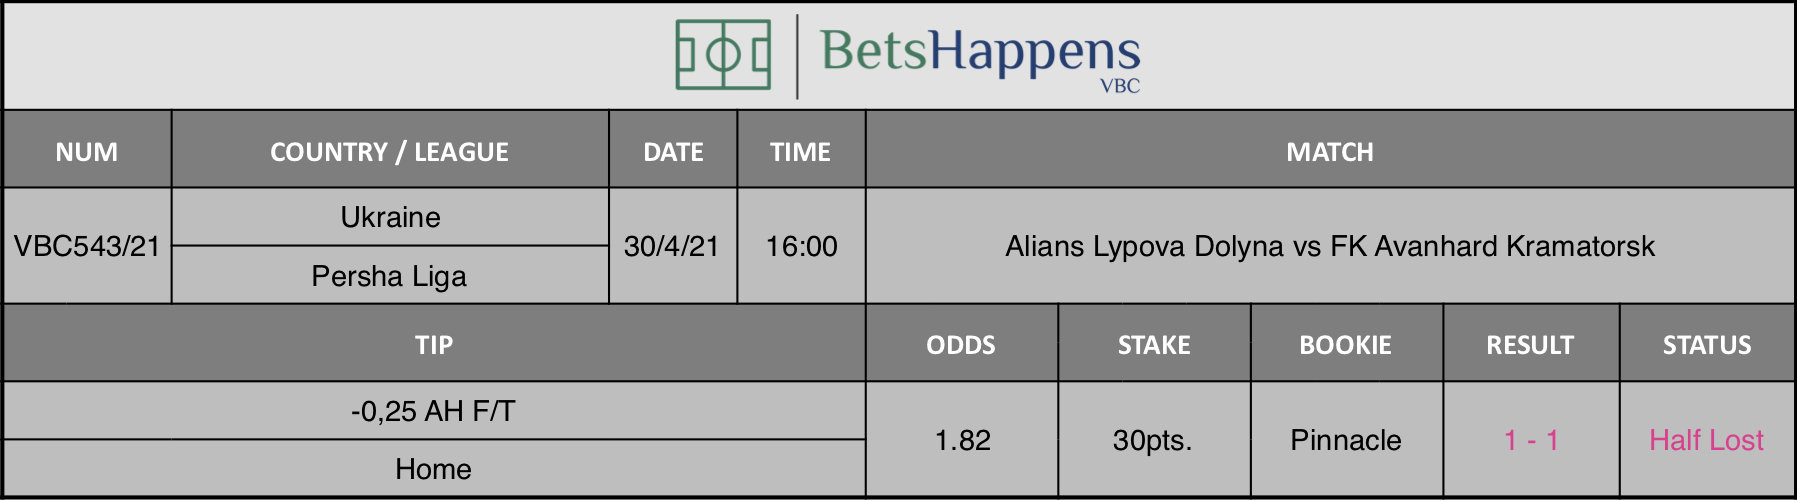 Results of our tip for the Alians Lypova Dolyna vs FK Avanhard Kramatorsk  match where -0,25 AH F/T Home is recommended.